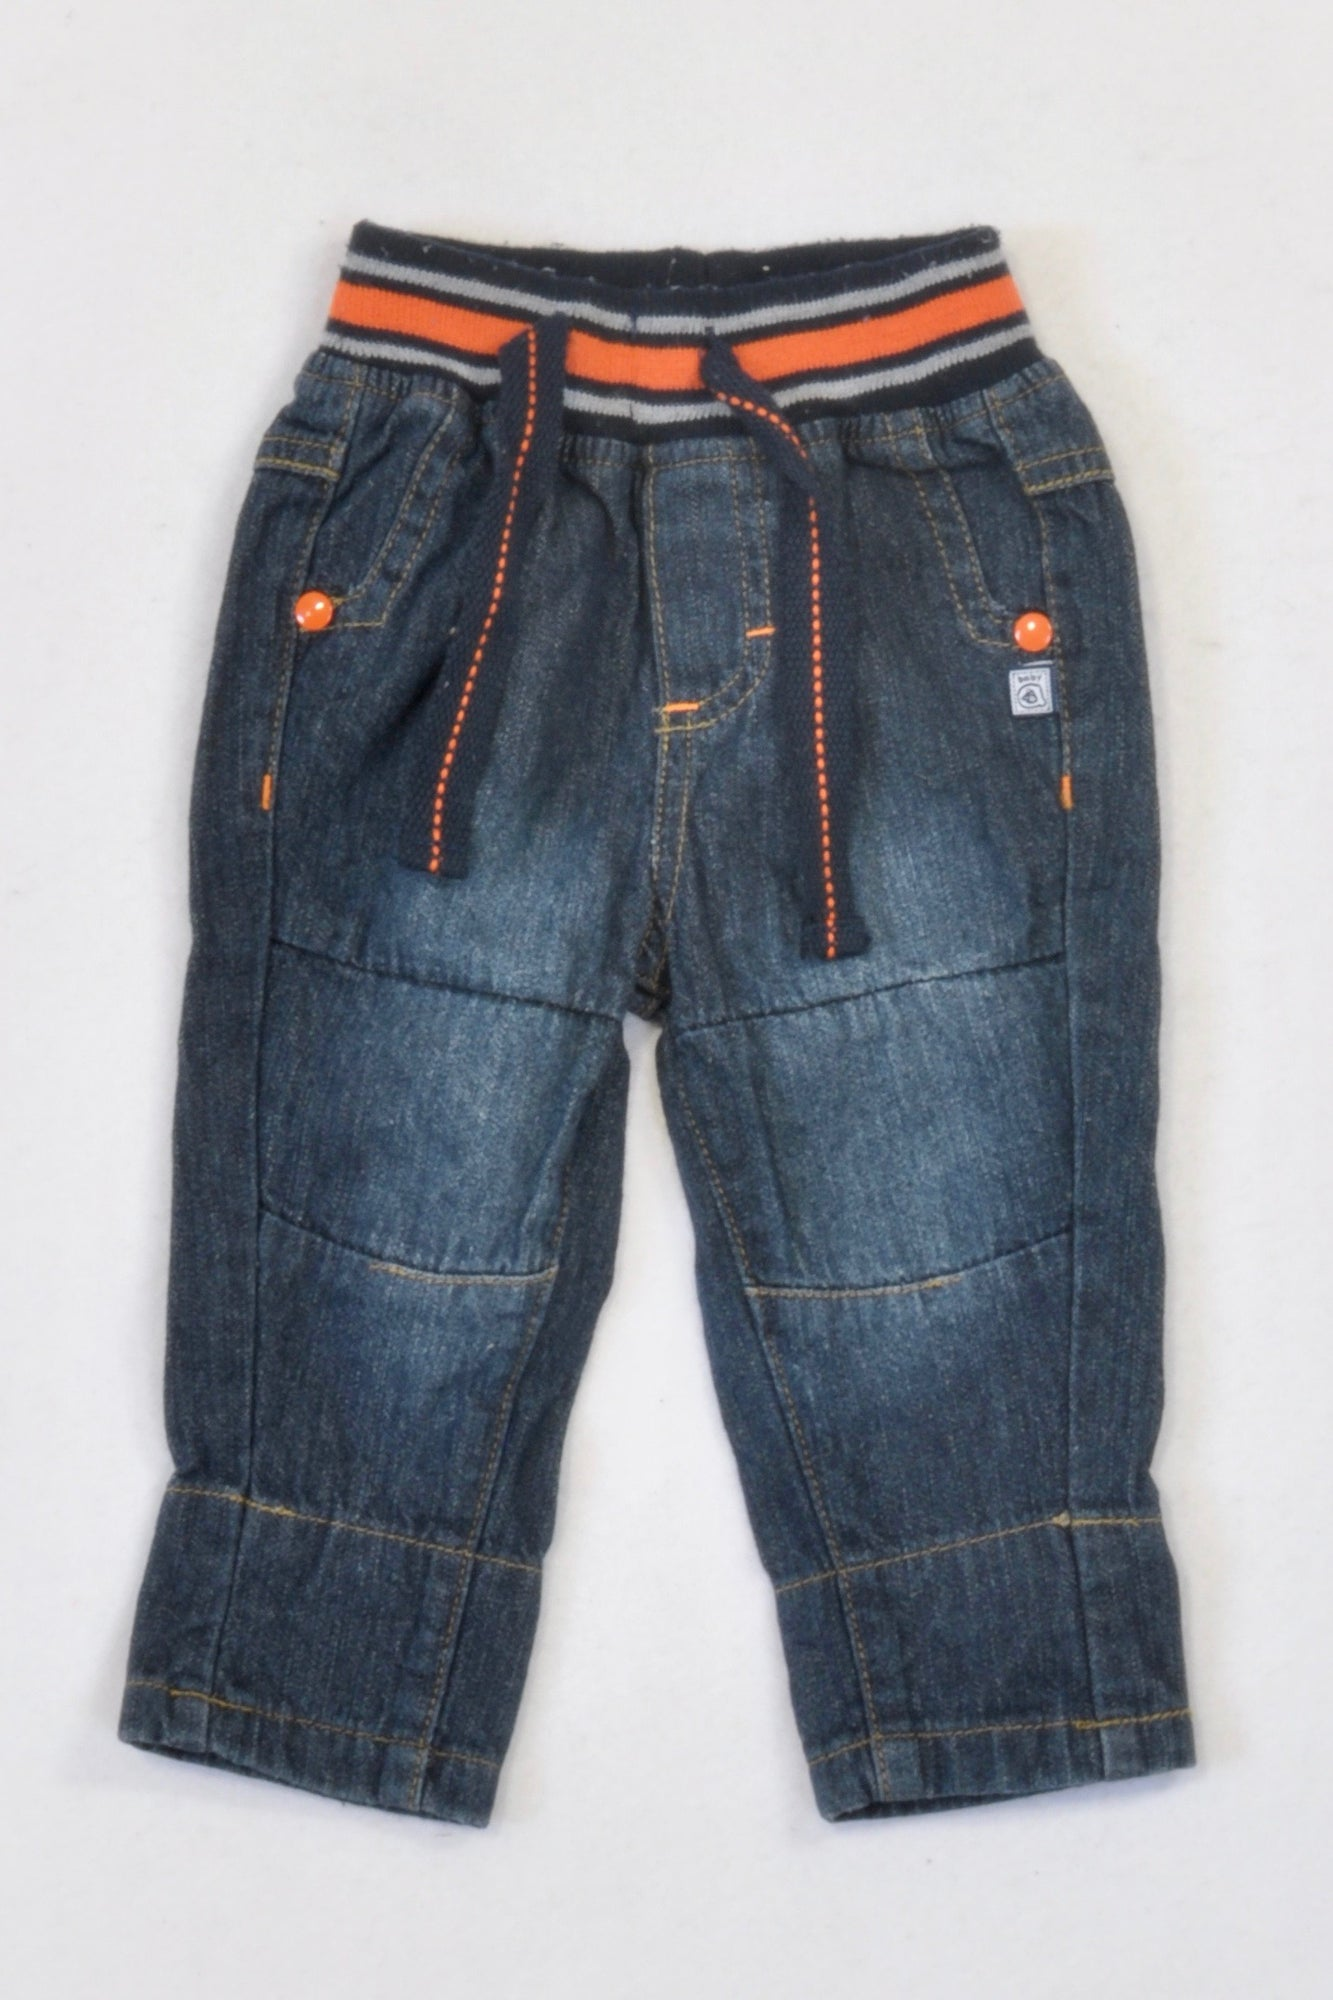 Ackermans Dark Denim Banded Orange Detail Jeans Boys 0-3 months